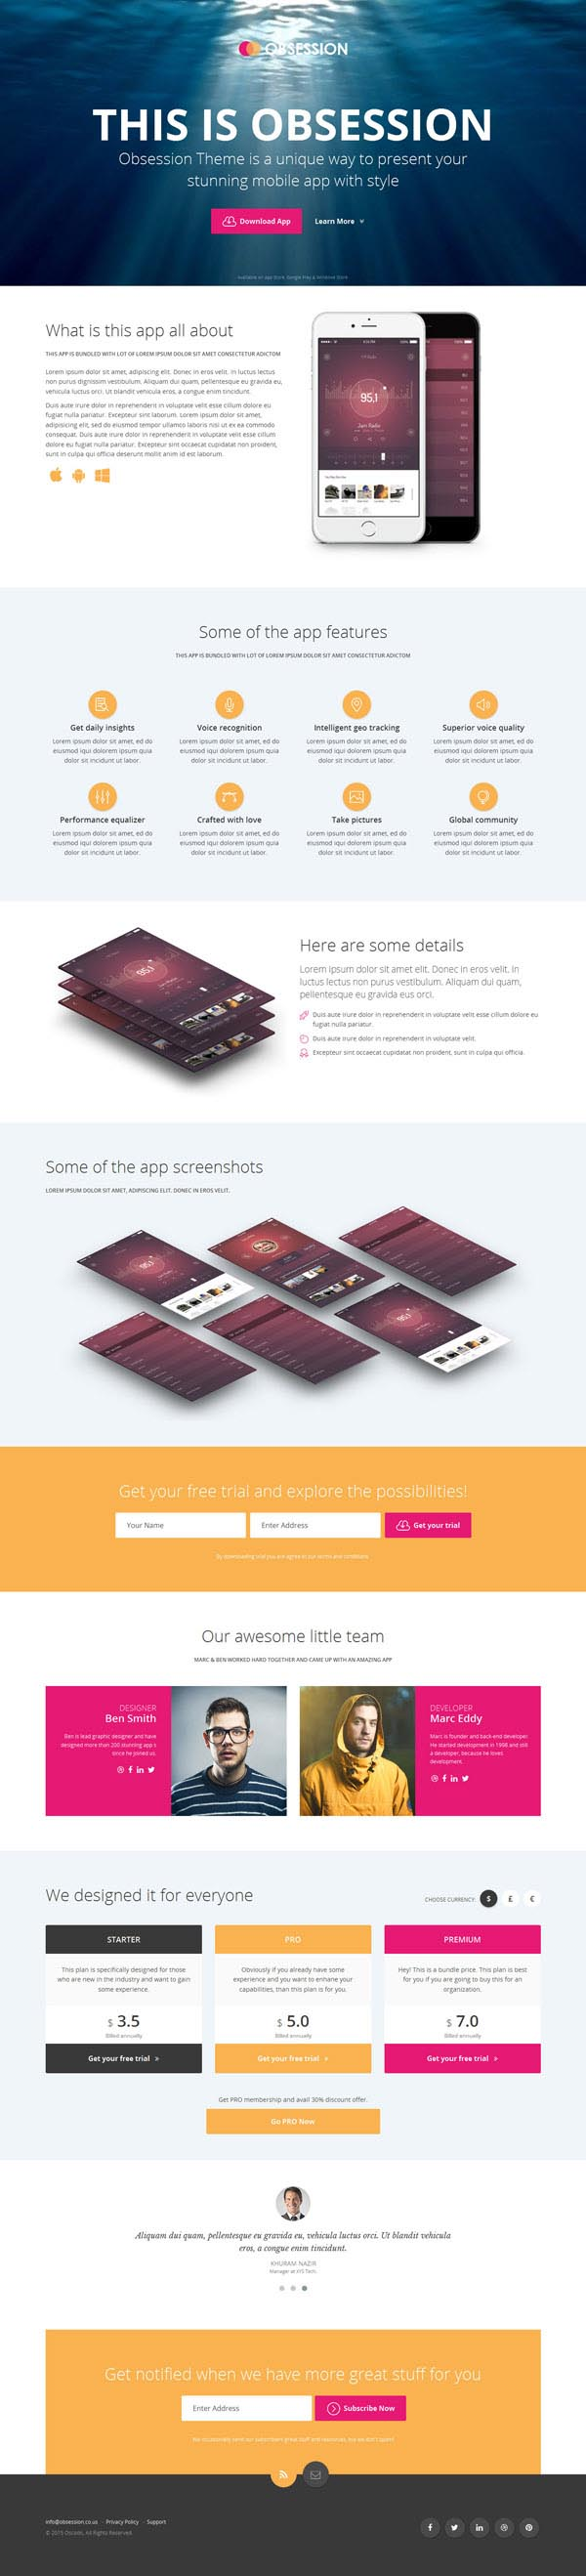 Obsession – HTML5 Bootstrap App Landing Page